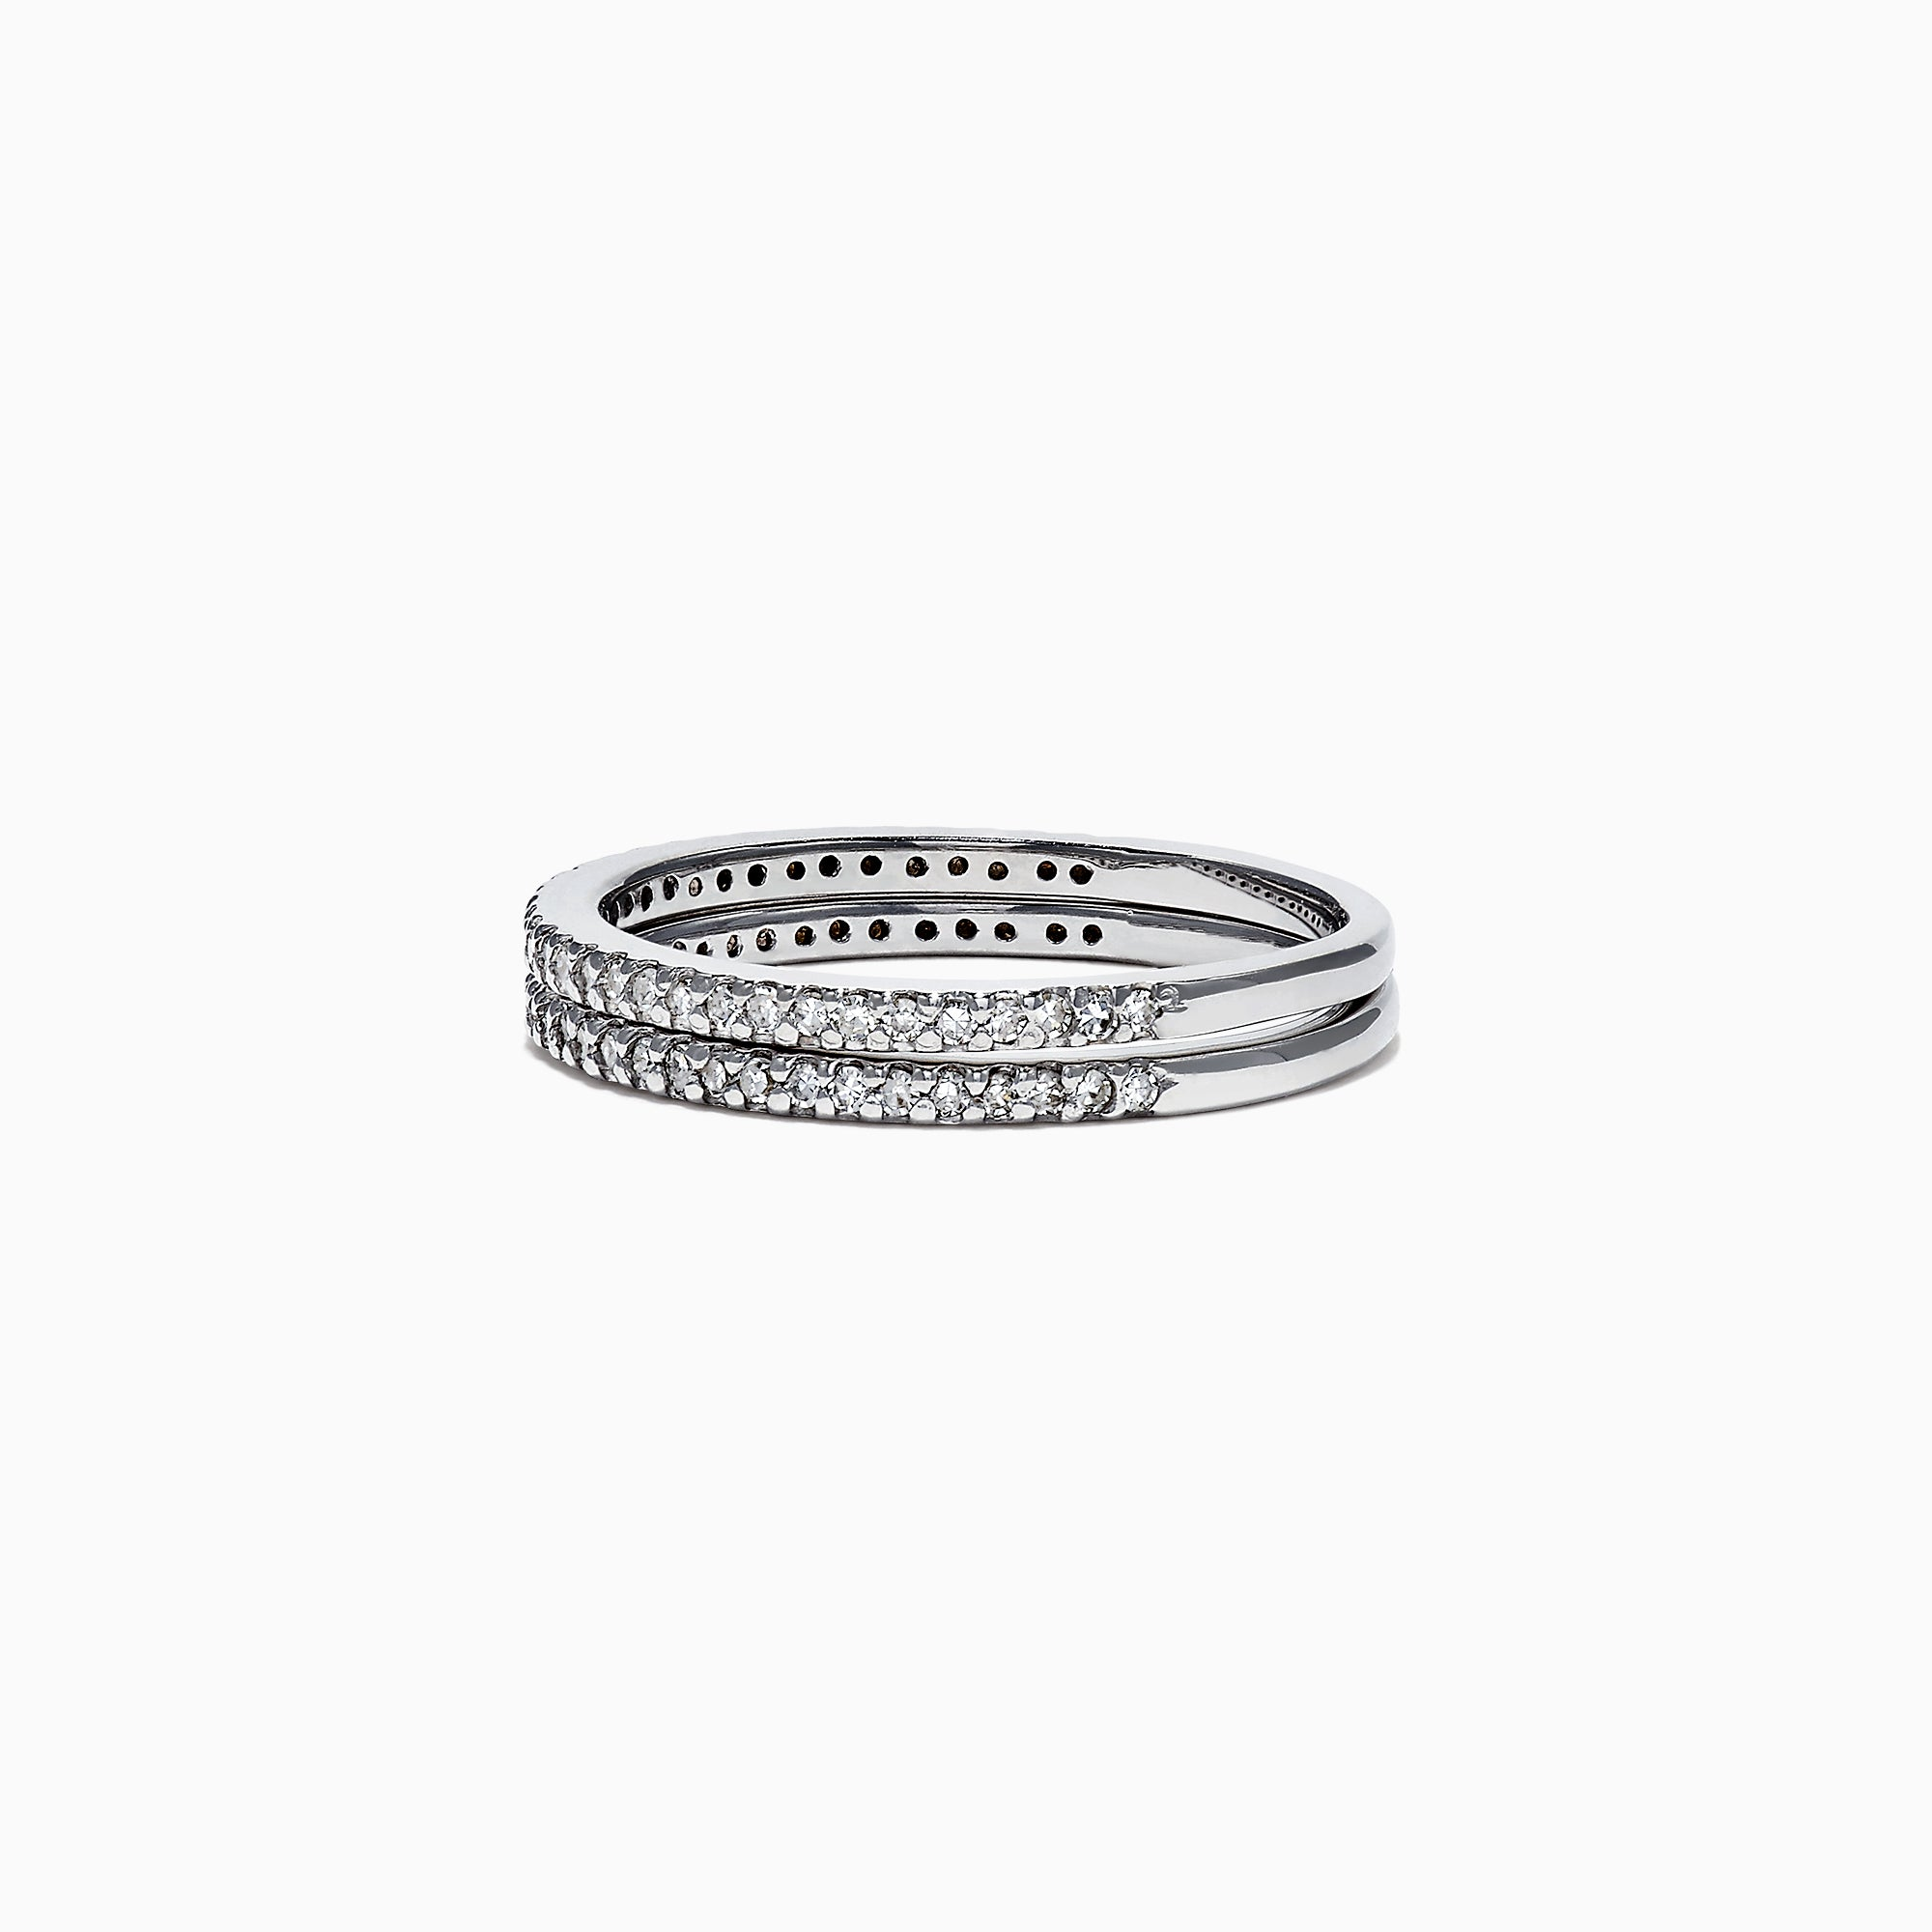 Effy Pave Classica 14K White Gold Double Band Diamond Ring, 0.36 TCW